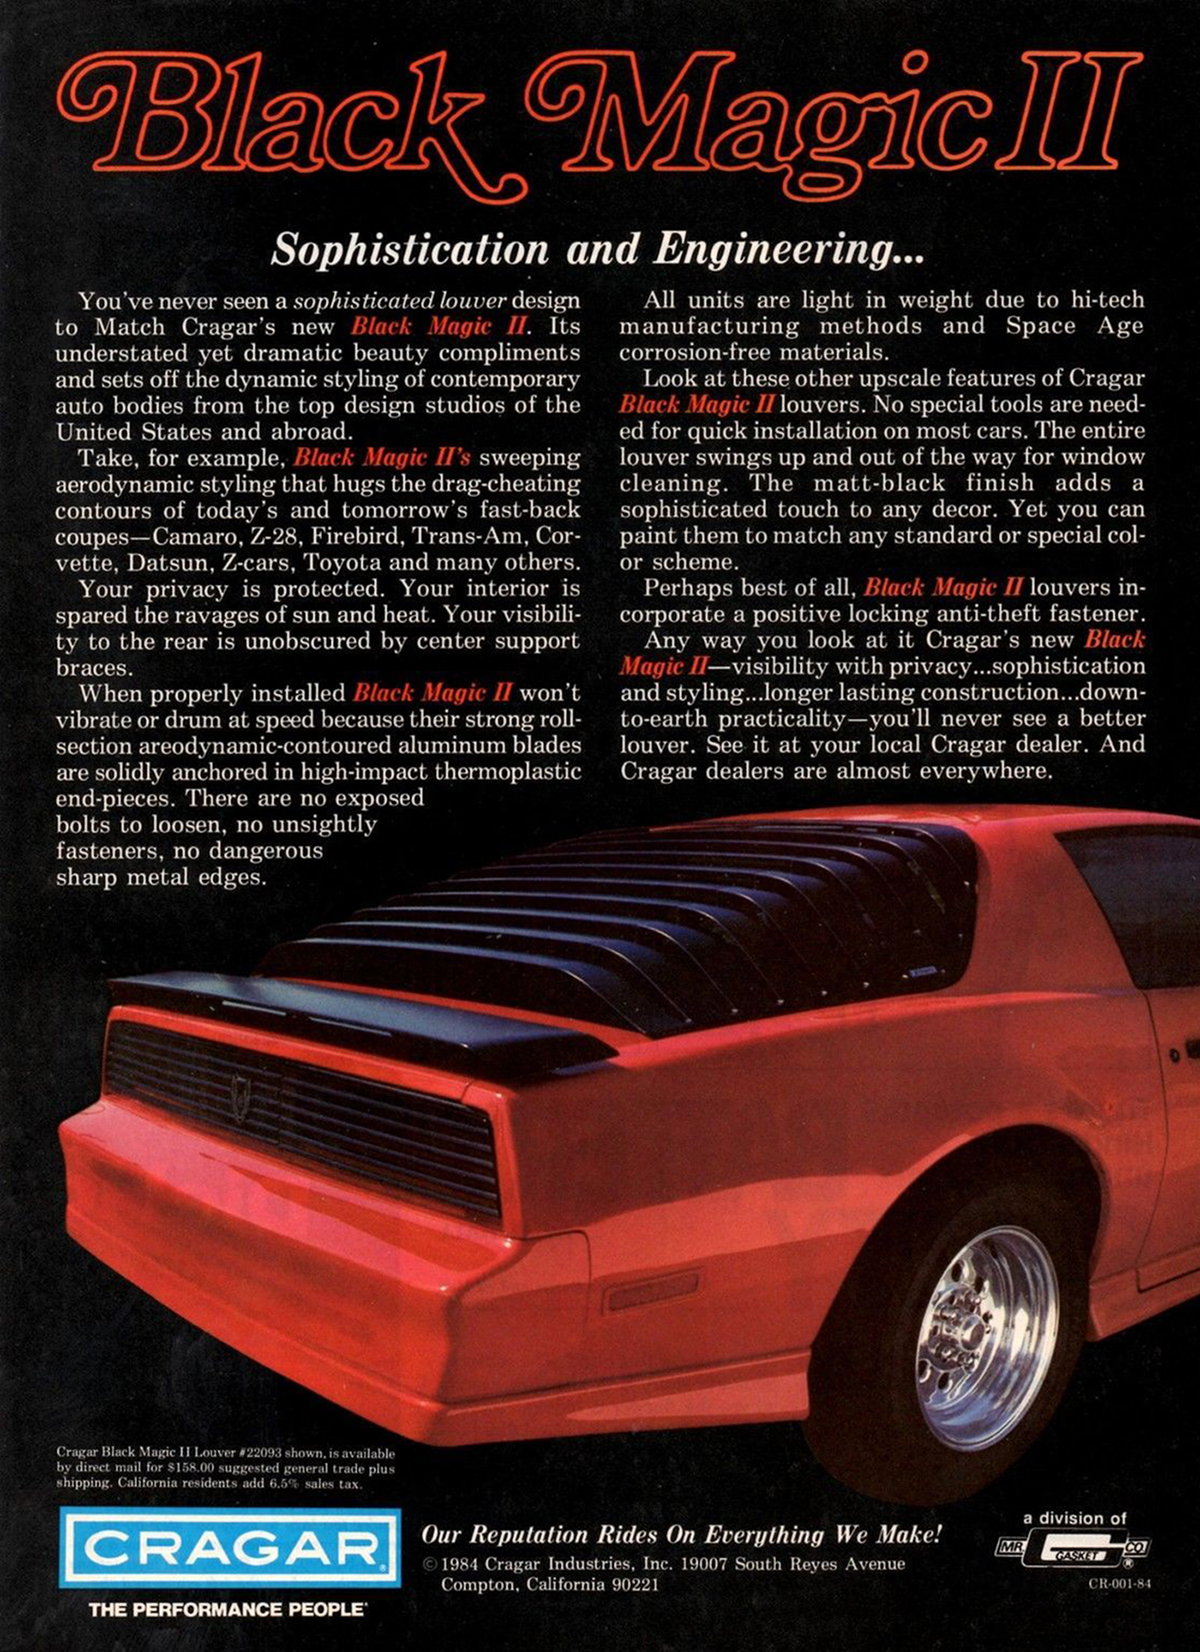 1984 Trans Am, 1984 Cragar Black Magic